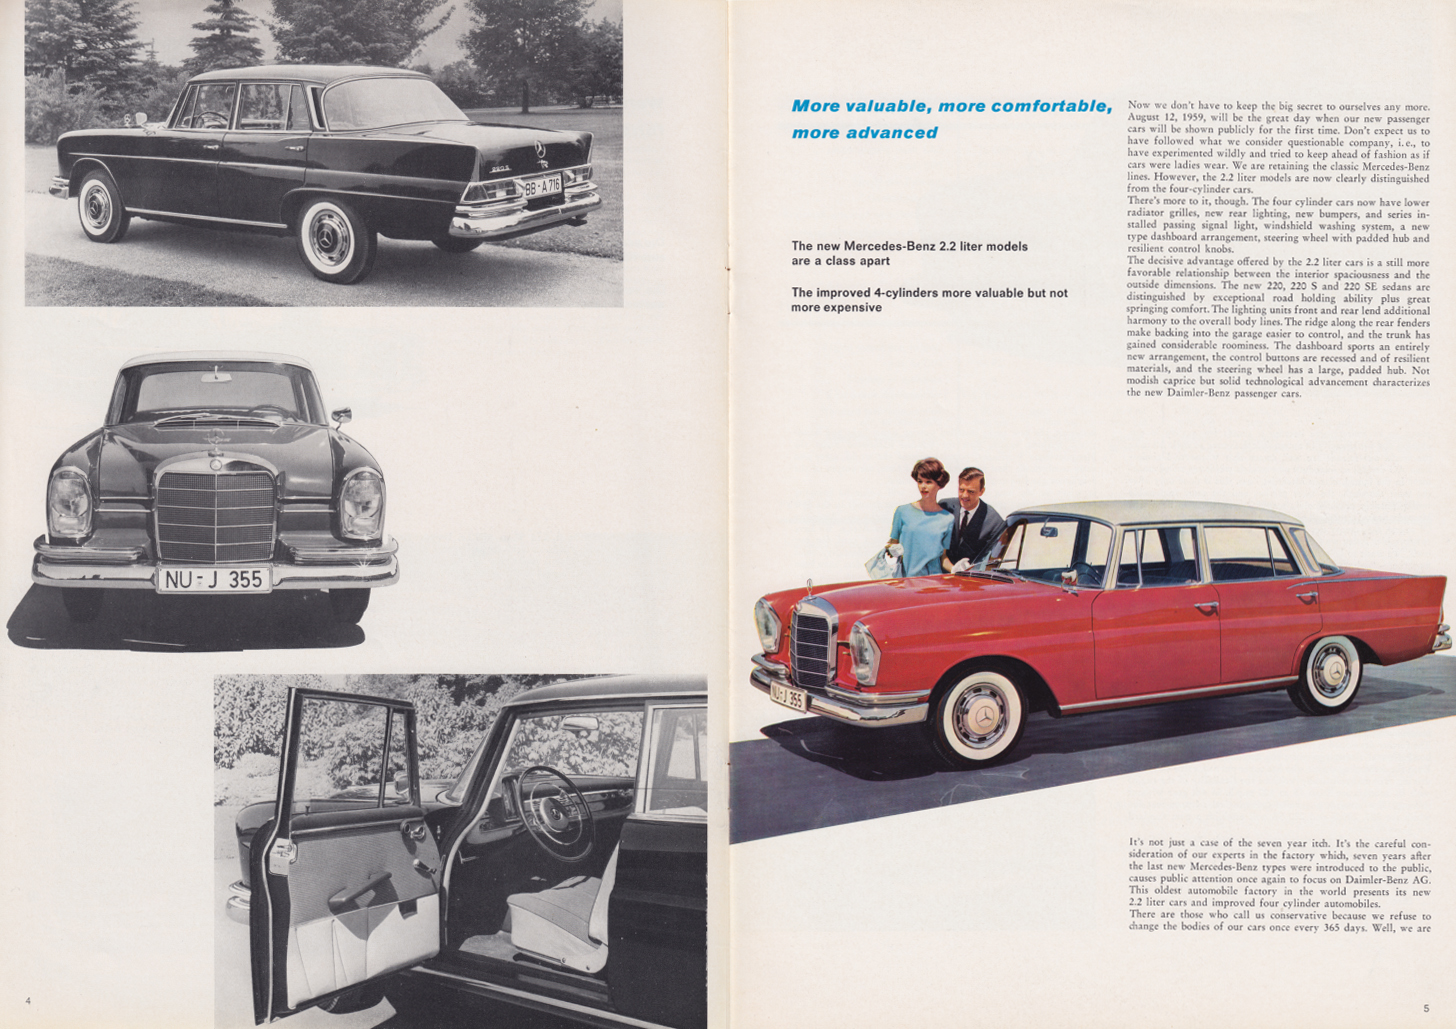 (REVISTA): Periódico In aller welt n.º 34 - Mercedes-Benz no mundo - 1959 - multilingue 003